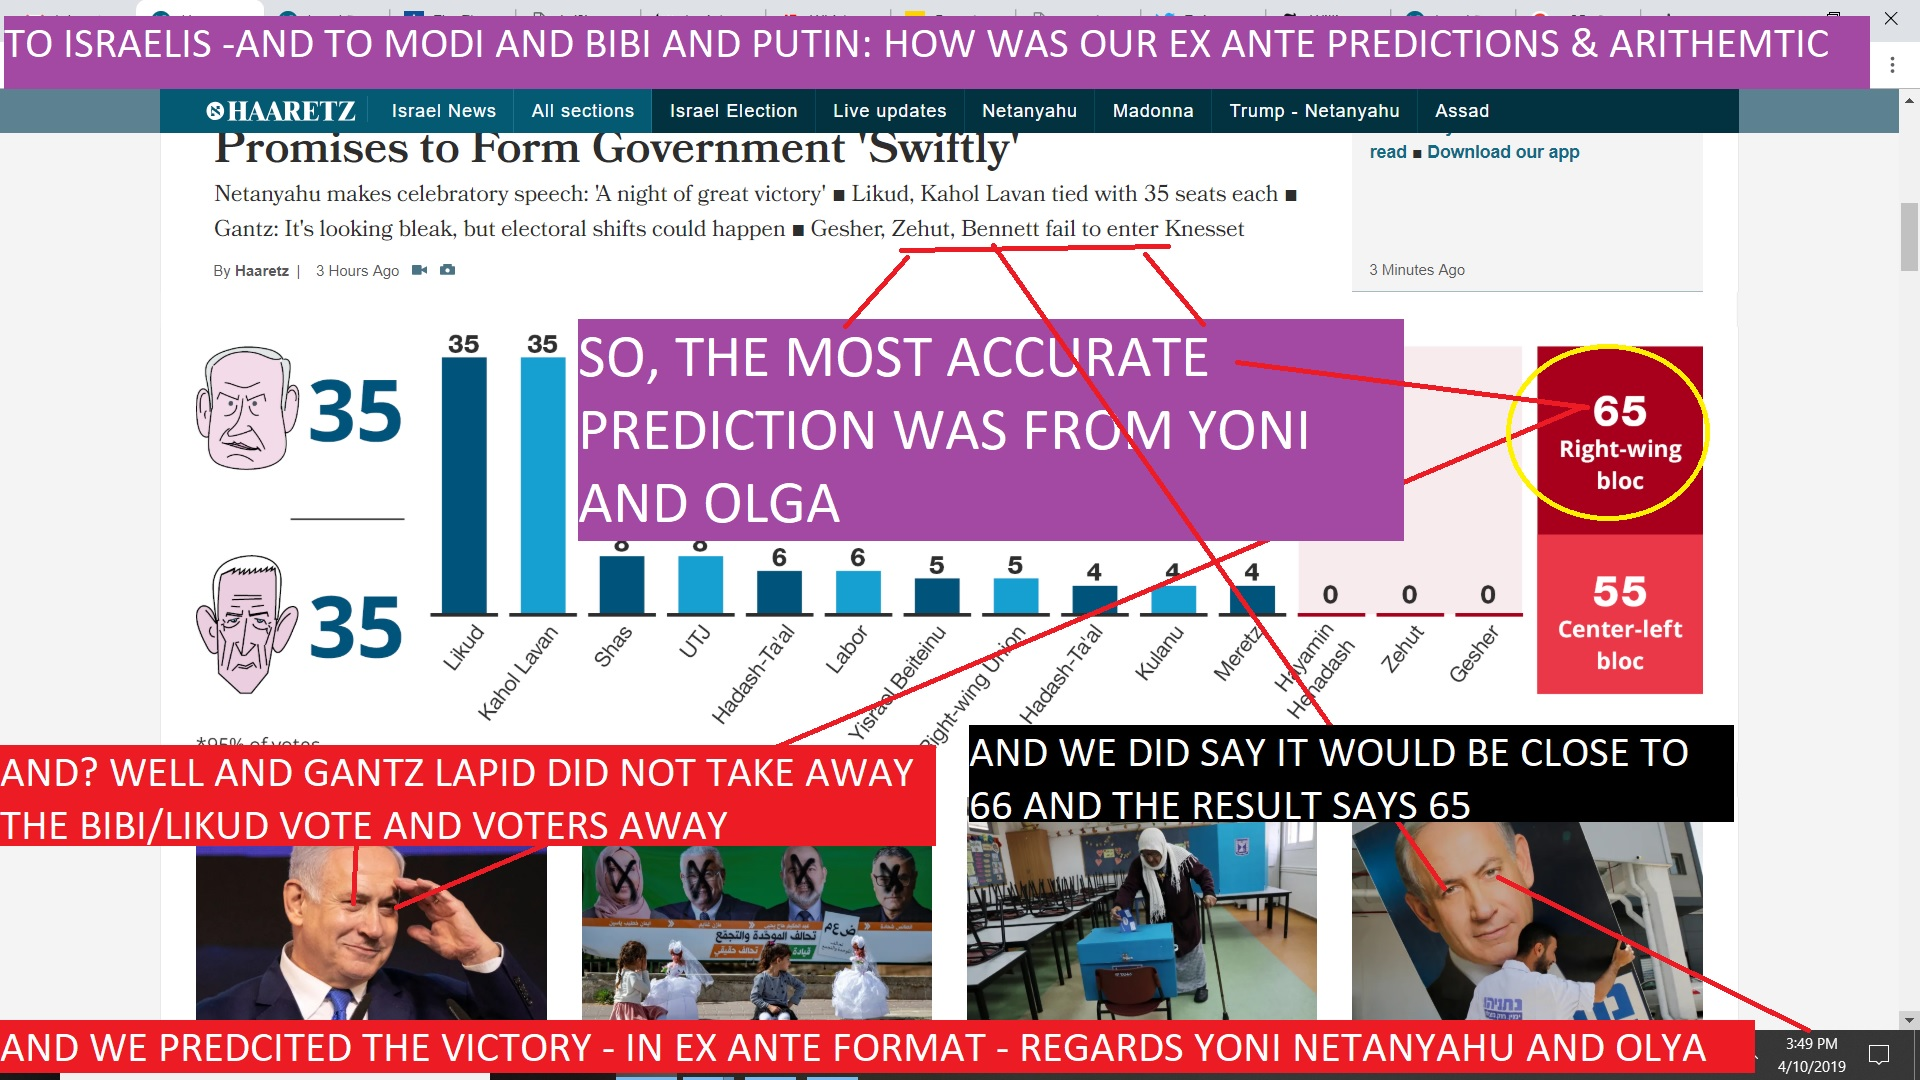 SUMMARY OF ISRAELI ELECTIONS FROM OLGA SHULMAN LEDNICHENKO AND YONI NETANYAHU - SO, WE PREDICTED THE RESULTS -